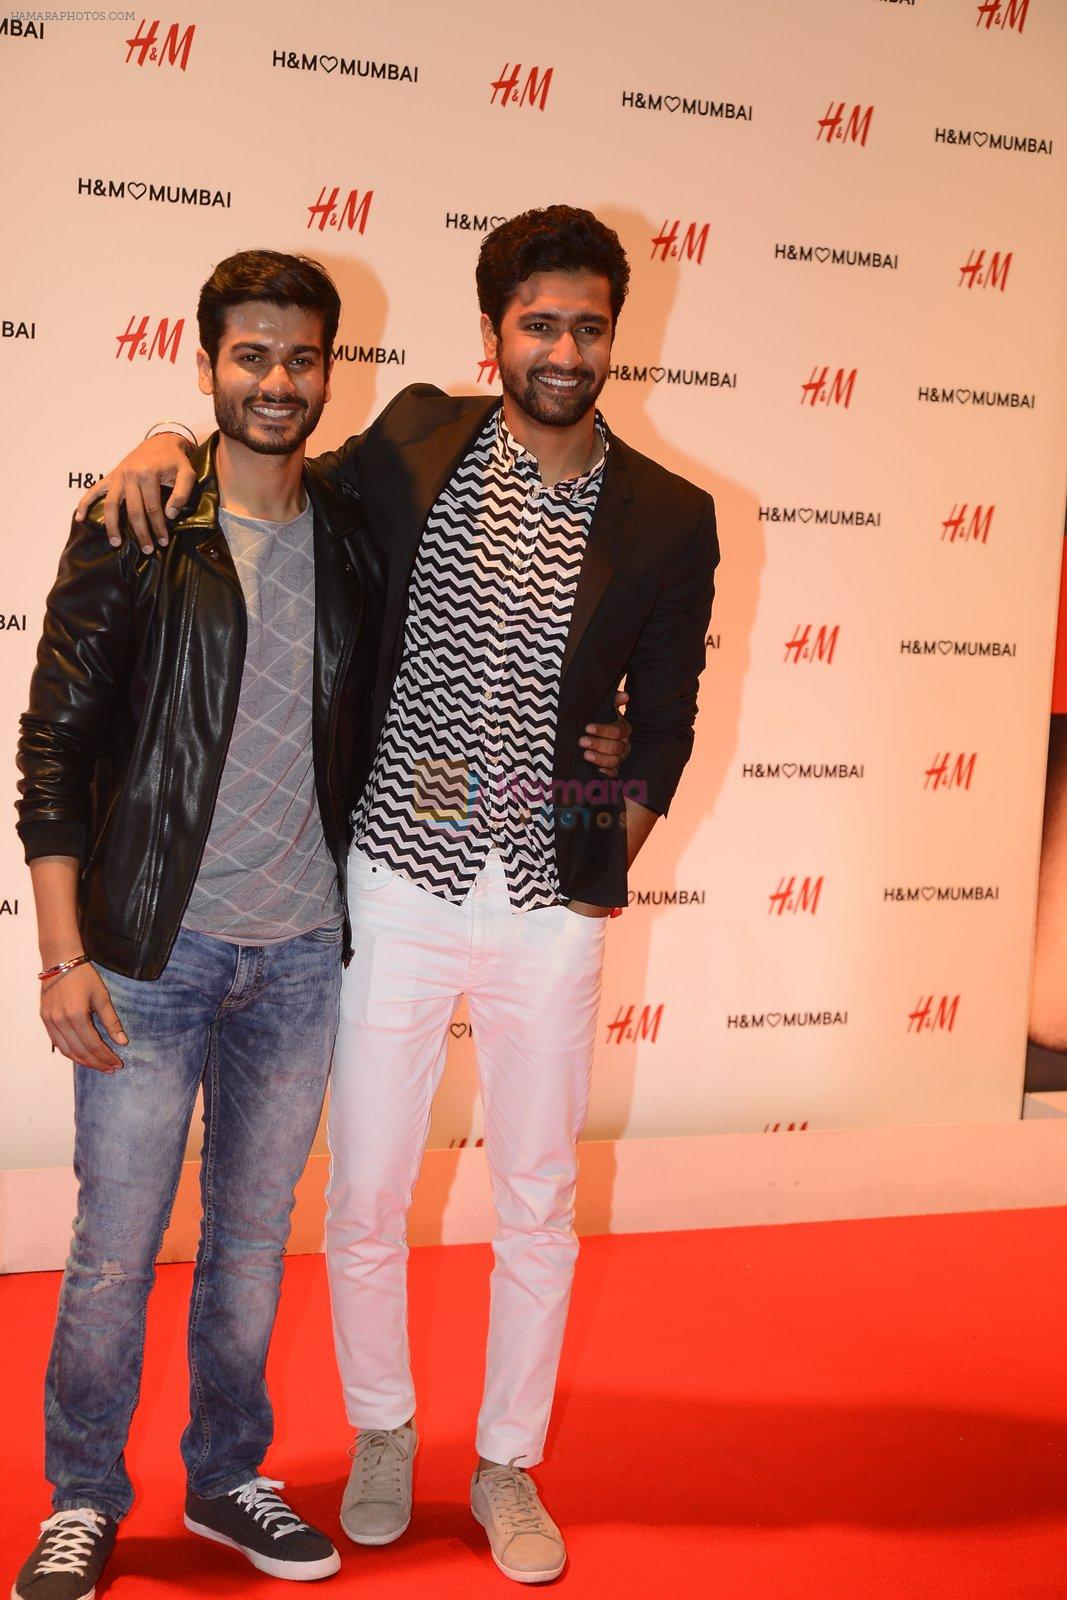 Vicky Kaushal at h&m mubai launch on 11th Aug 2016